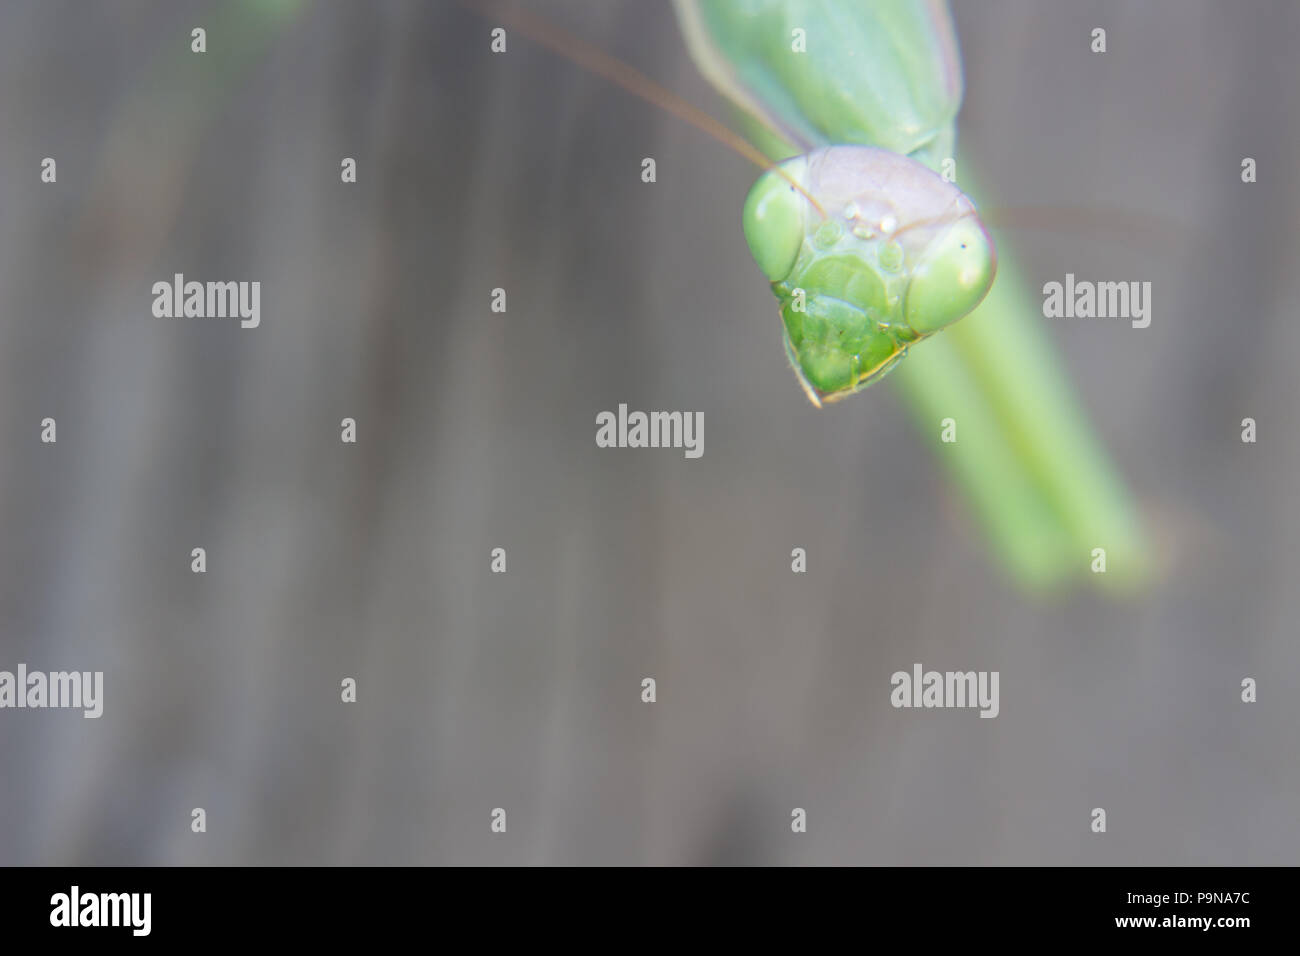 A close up of preying mantis on a wall looking right at you with those bulging eyes. - Stock Image